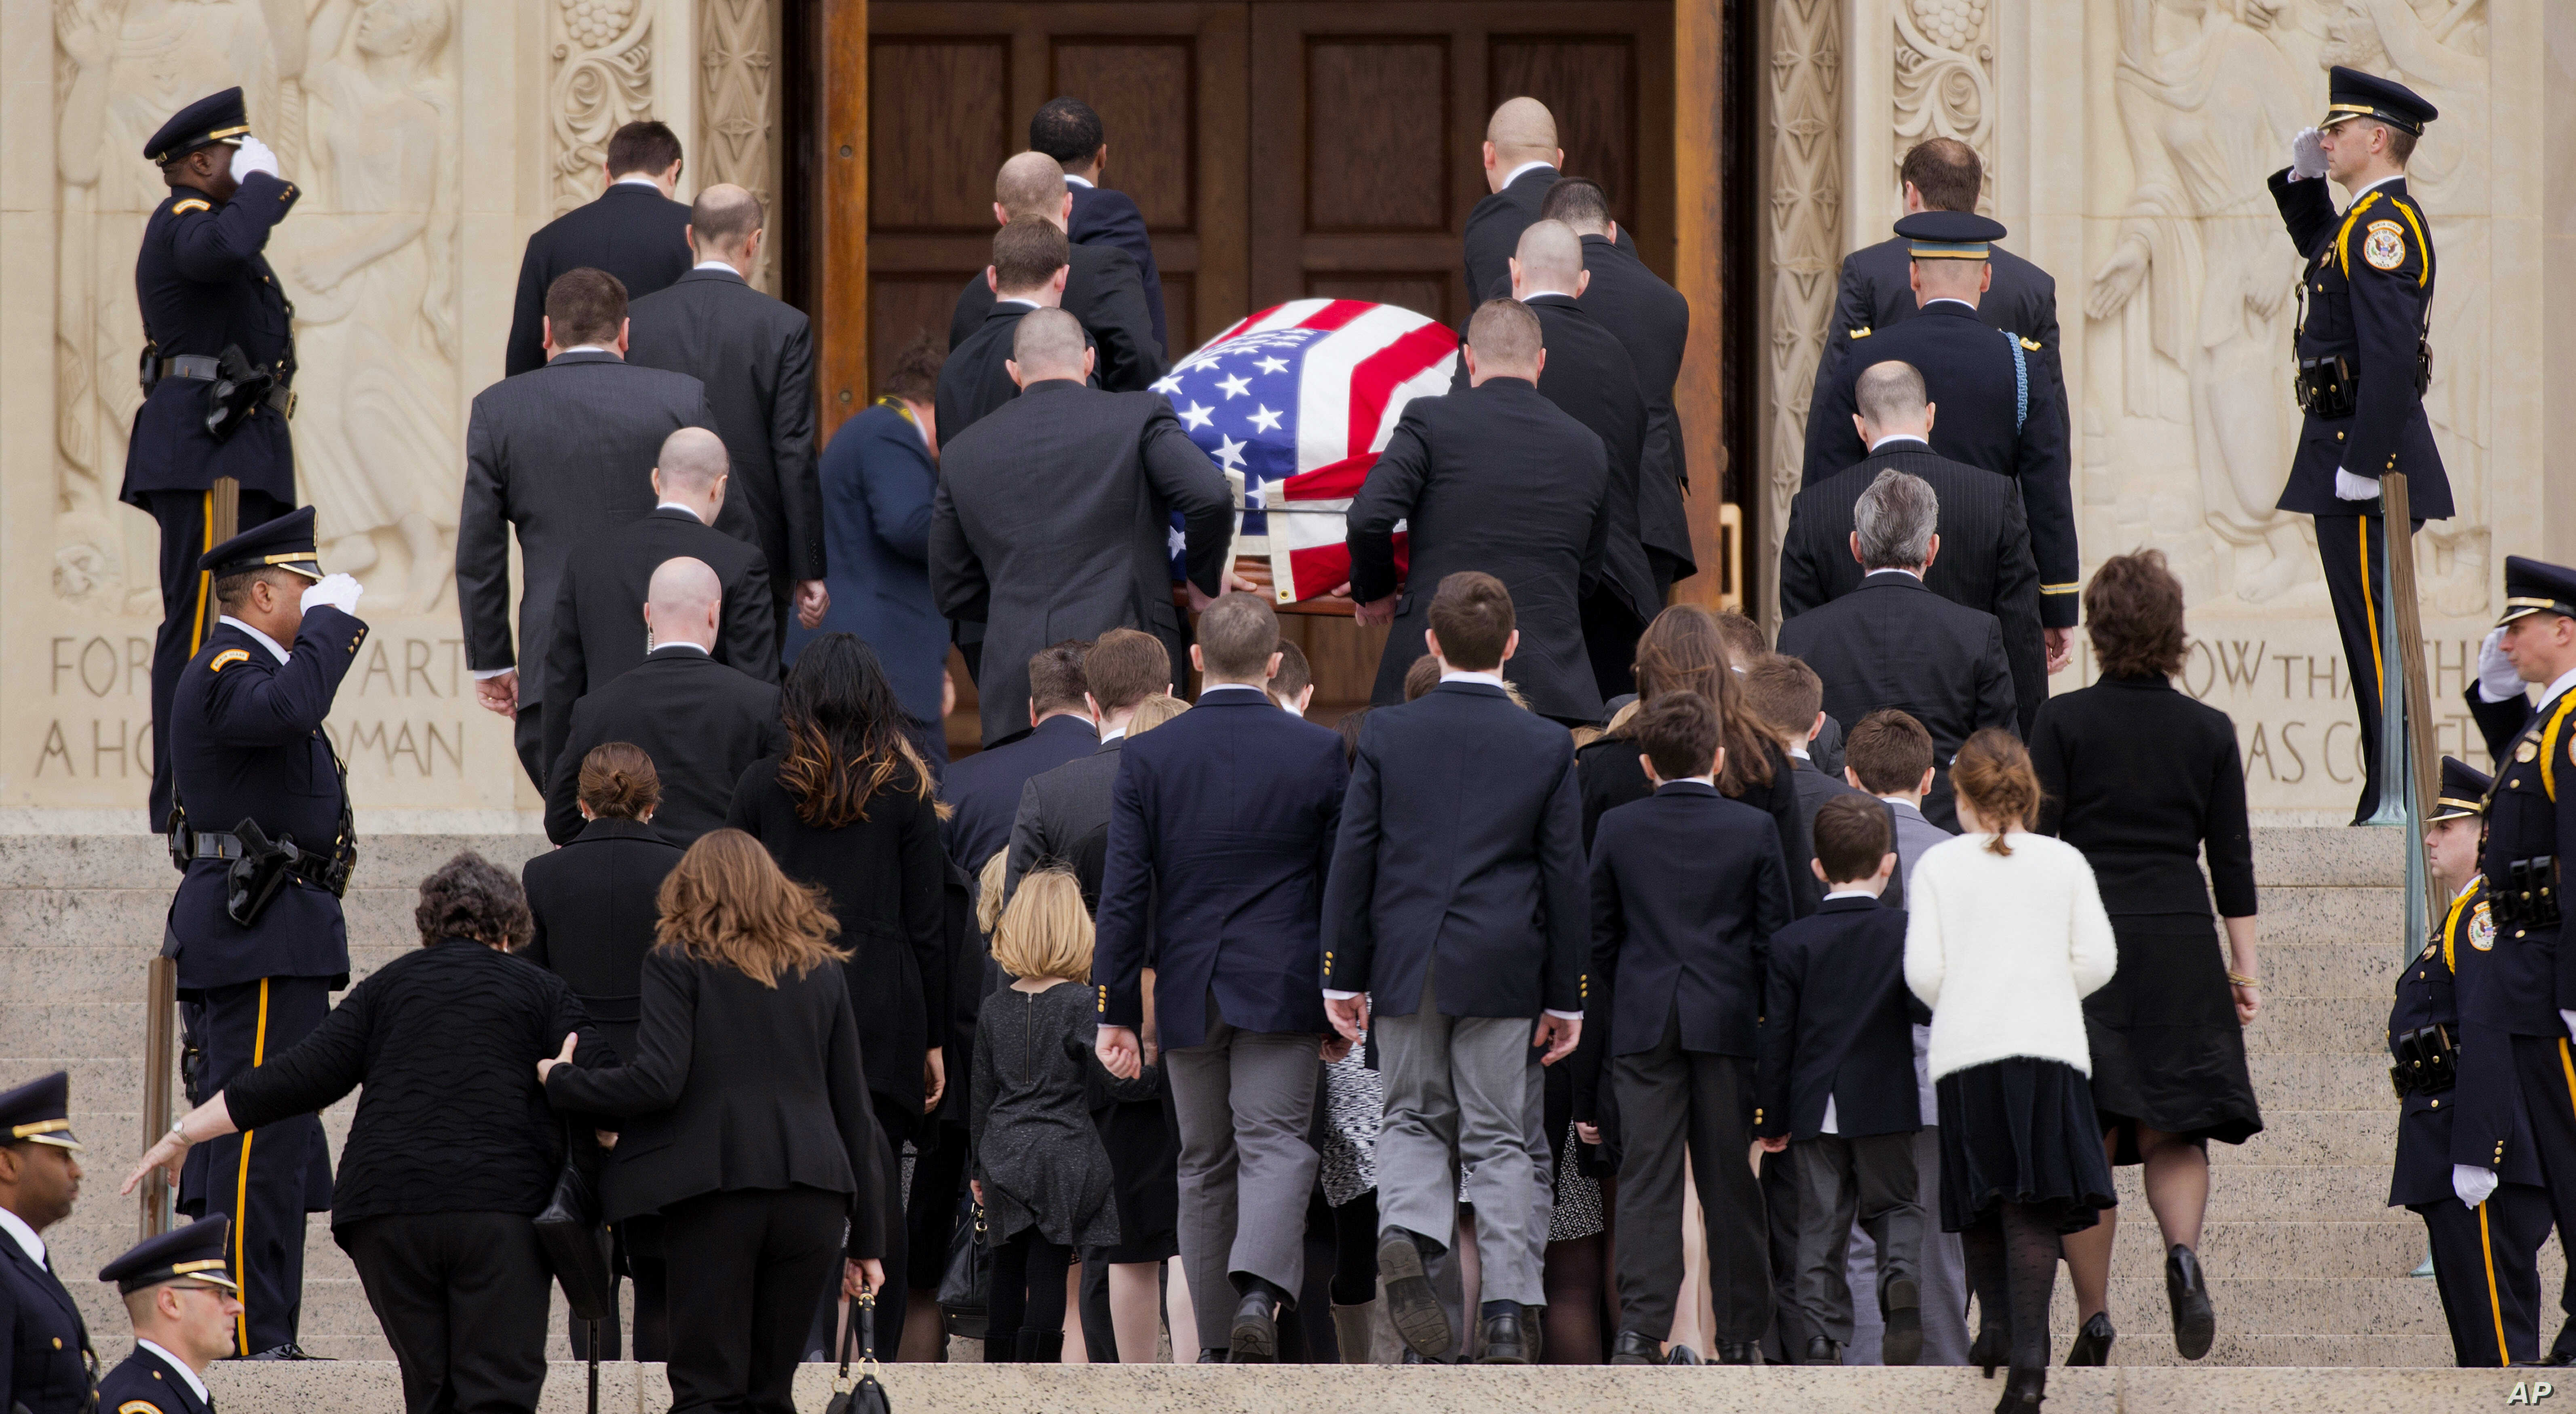 Family members follow behind the casket of the late Supreme Court Associate Justice Antonin Scalia as they arrive for a funeral Mass at the Basilica of the National Shrine of the Immaculate Conception in Washington, Feb. 20, 2016.